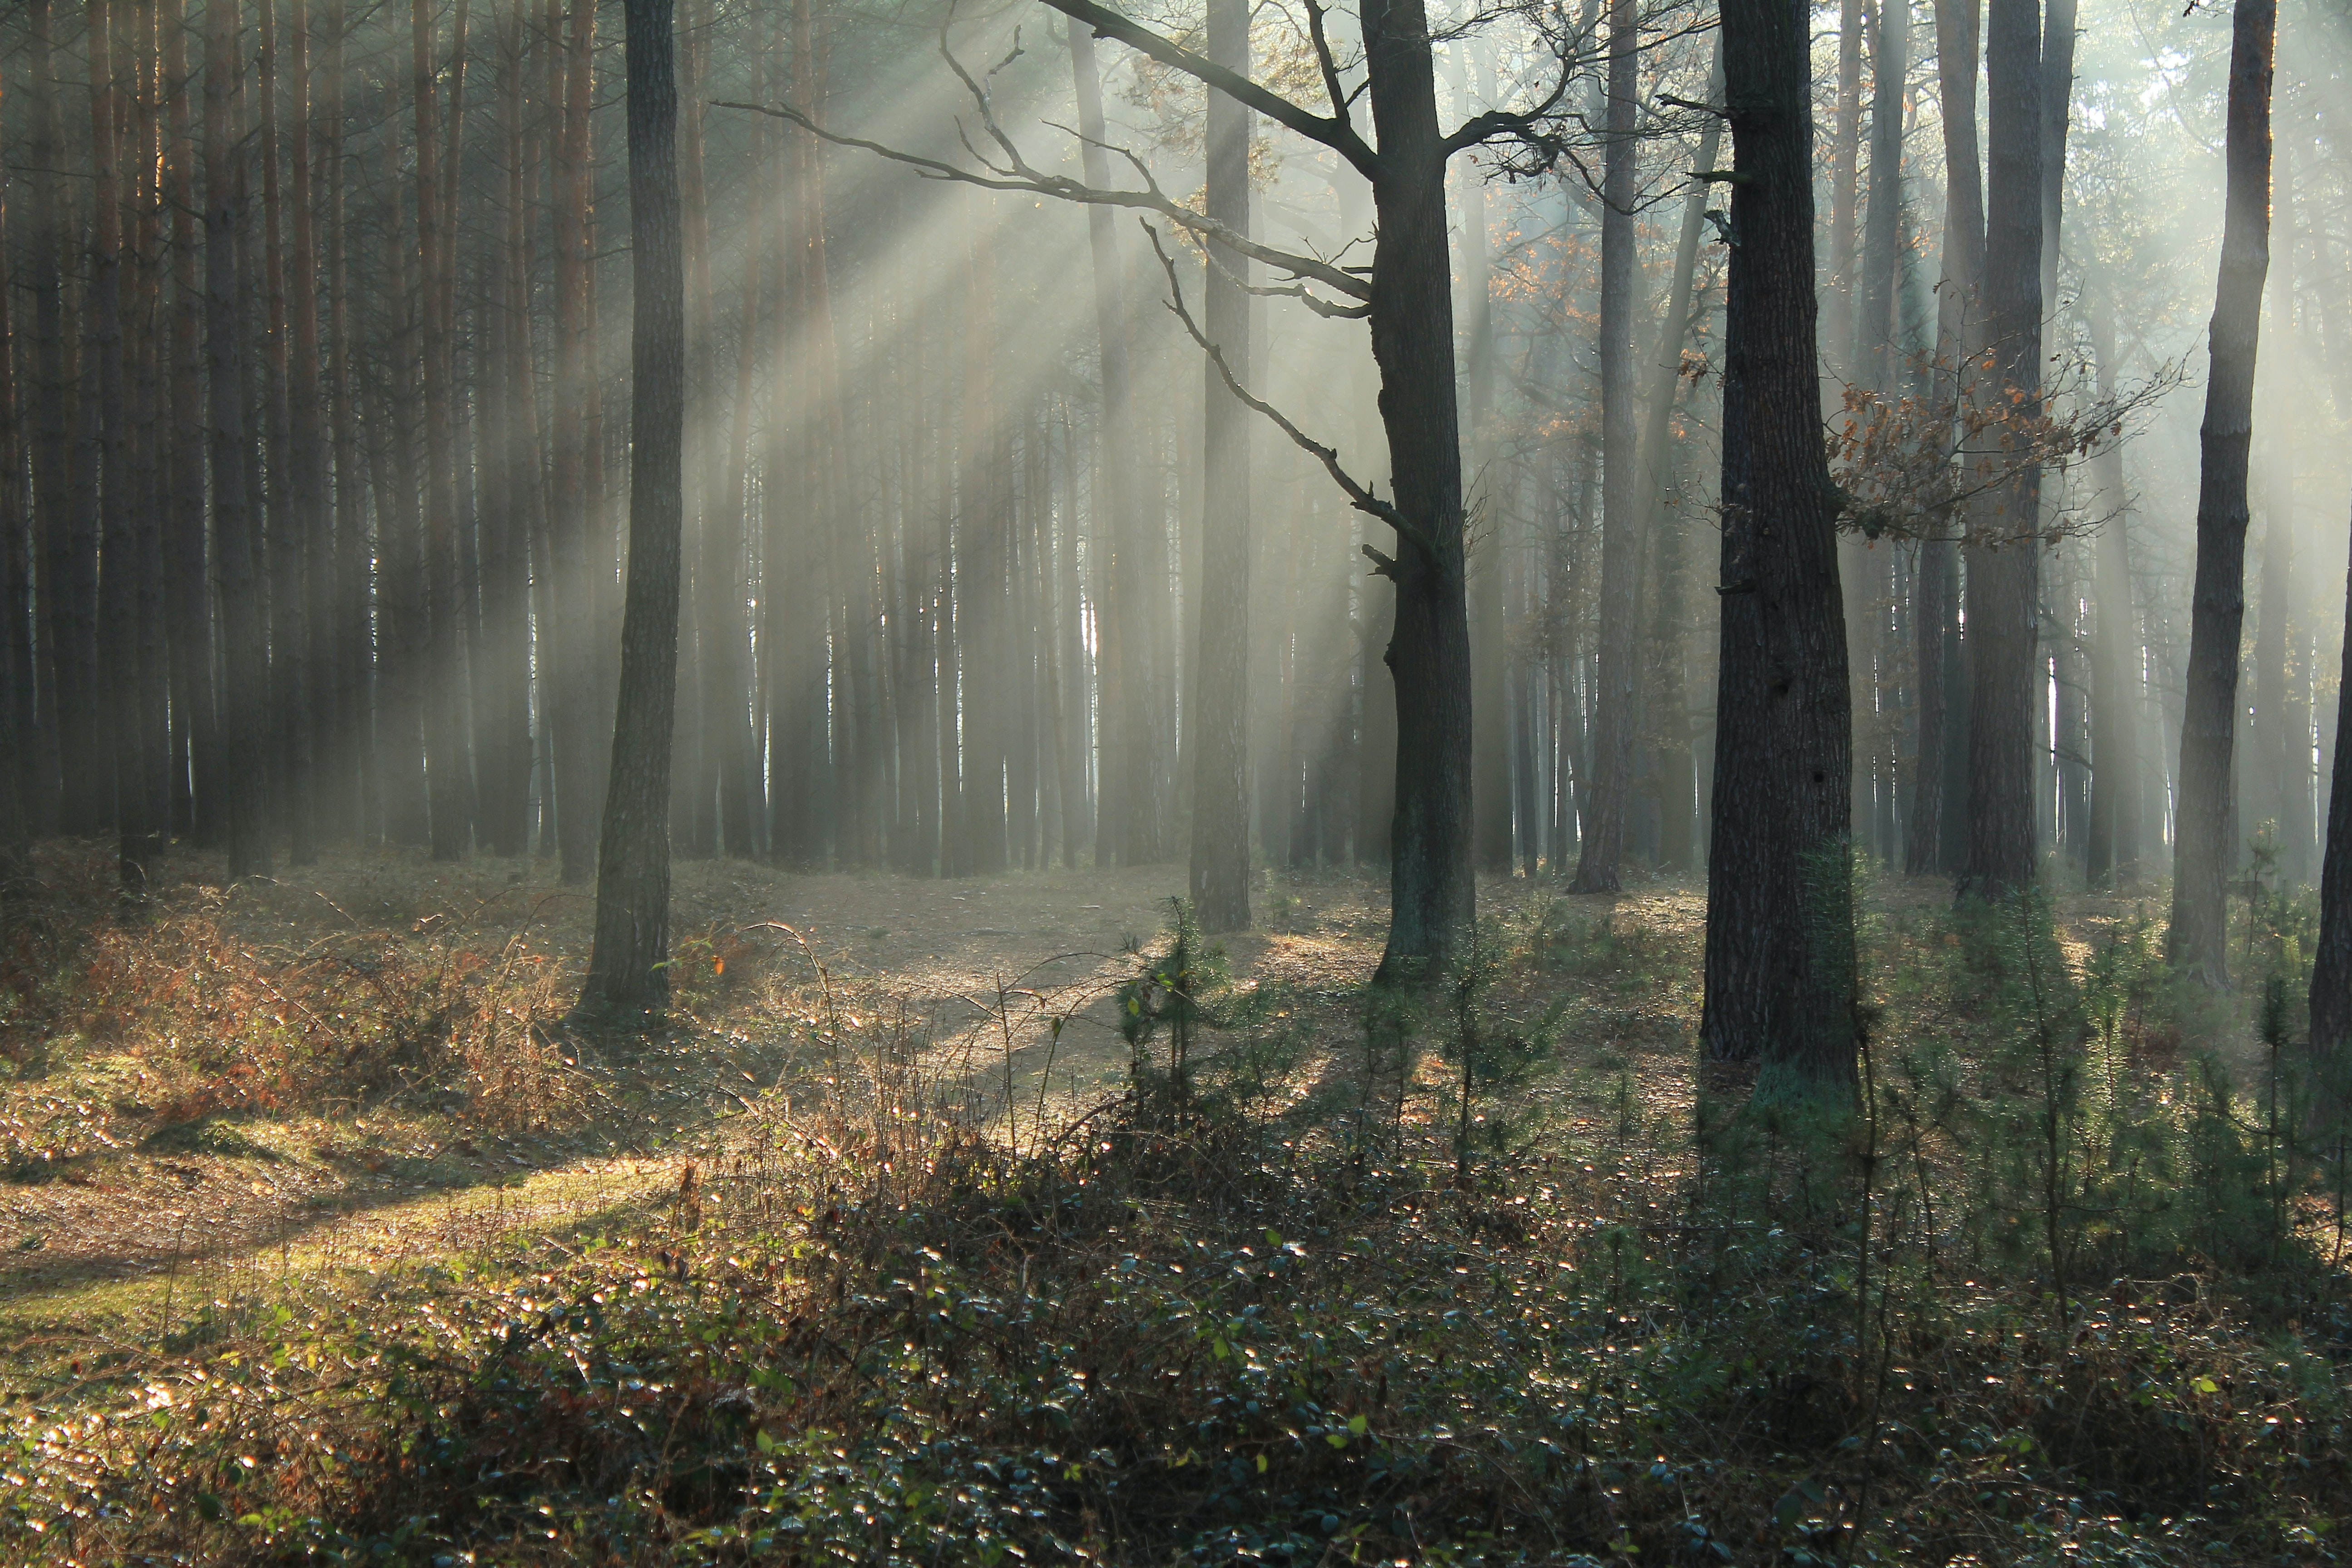 foggy forest full of trees